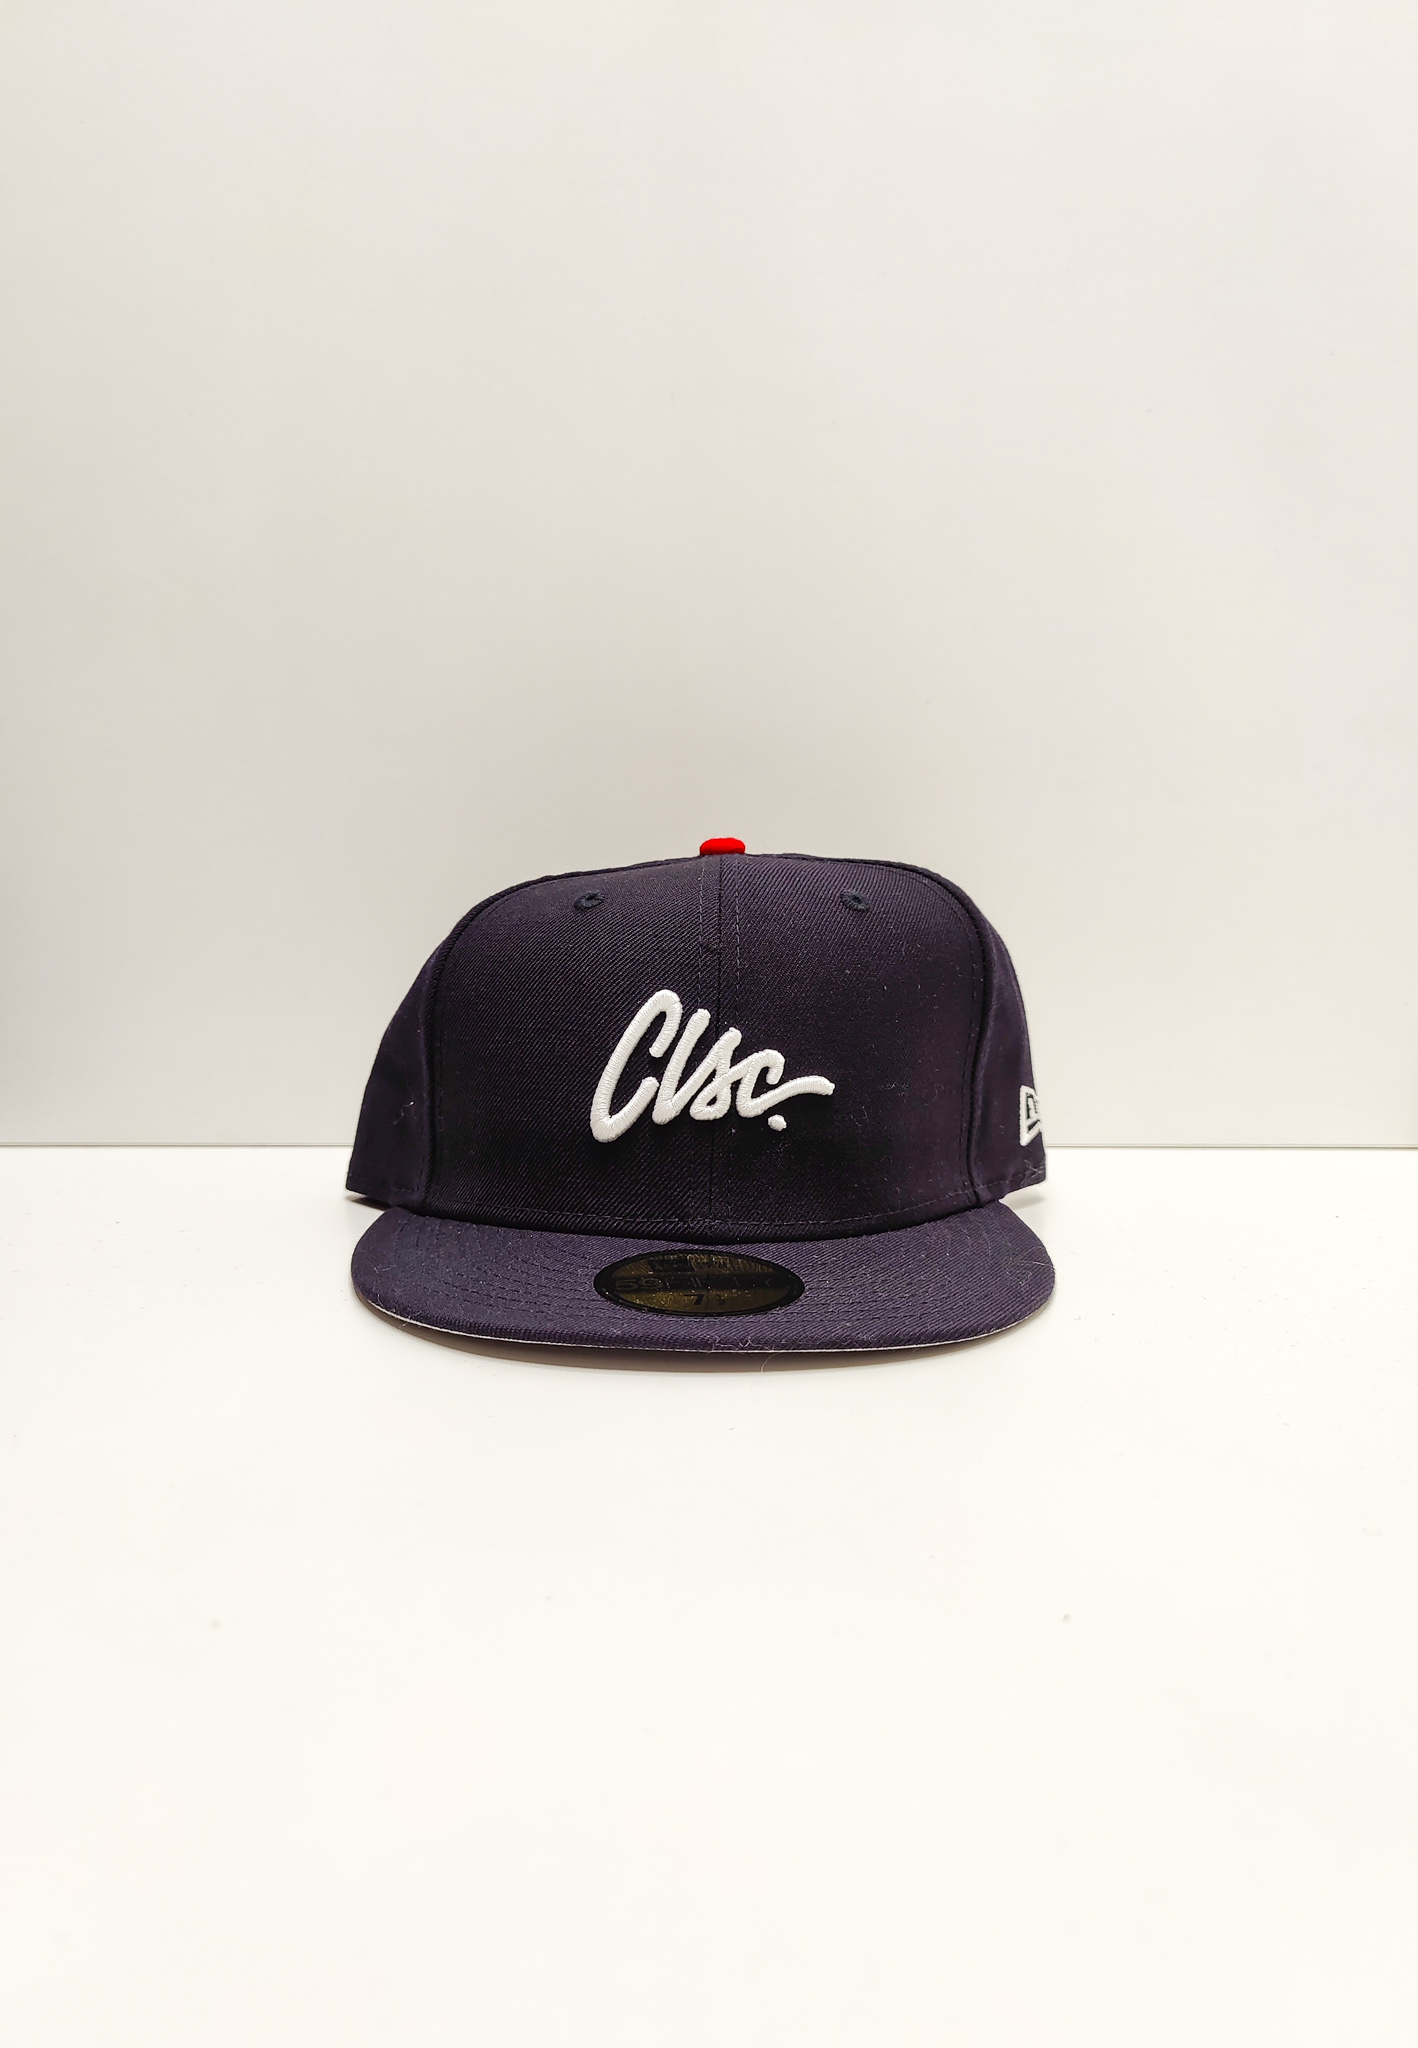 New Era 59Fifty CLSC x In4mation